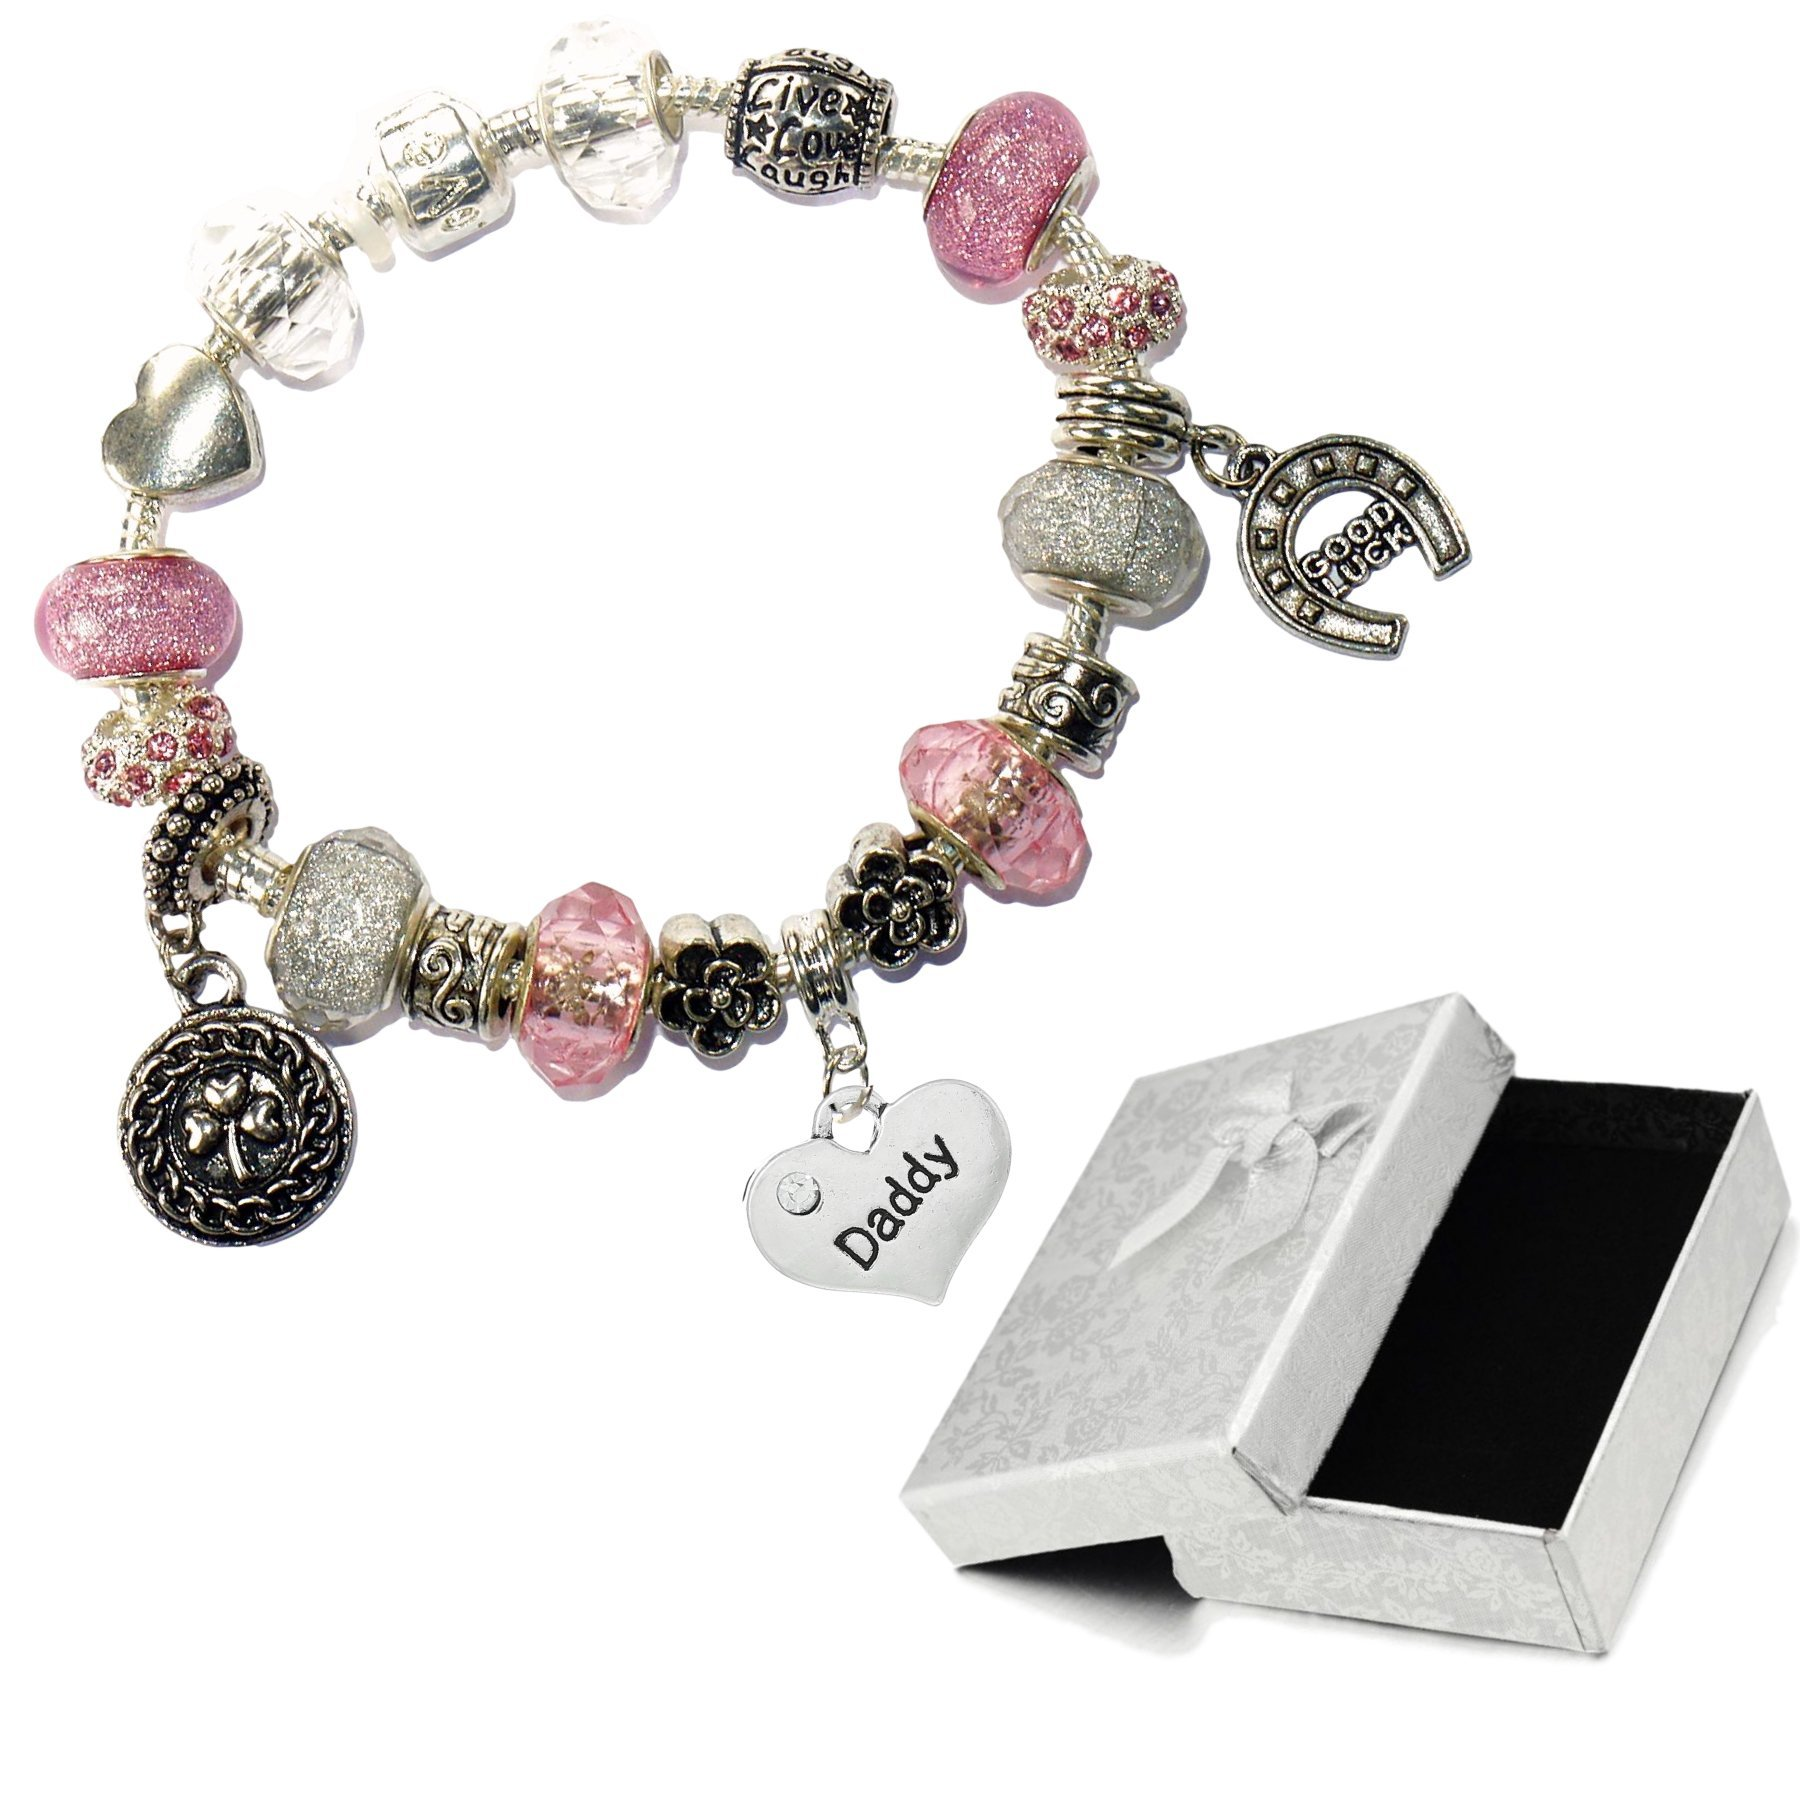 Charm Buddy Daddy Dad Pink Silver Crystal Good Luck Pandora Style Bracelet With Charms Gift Box